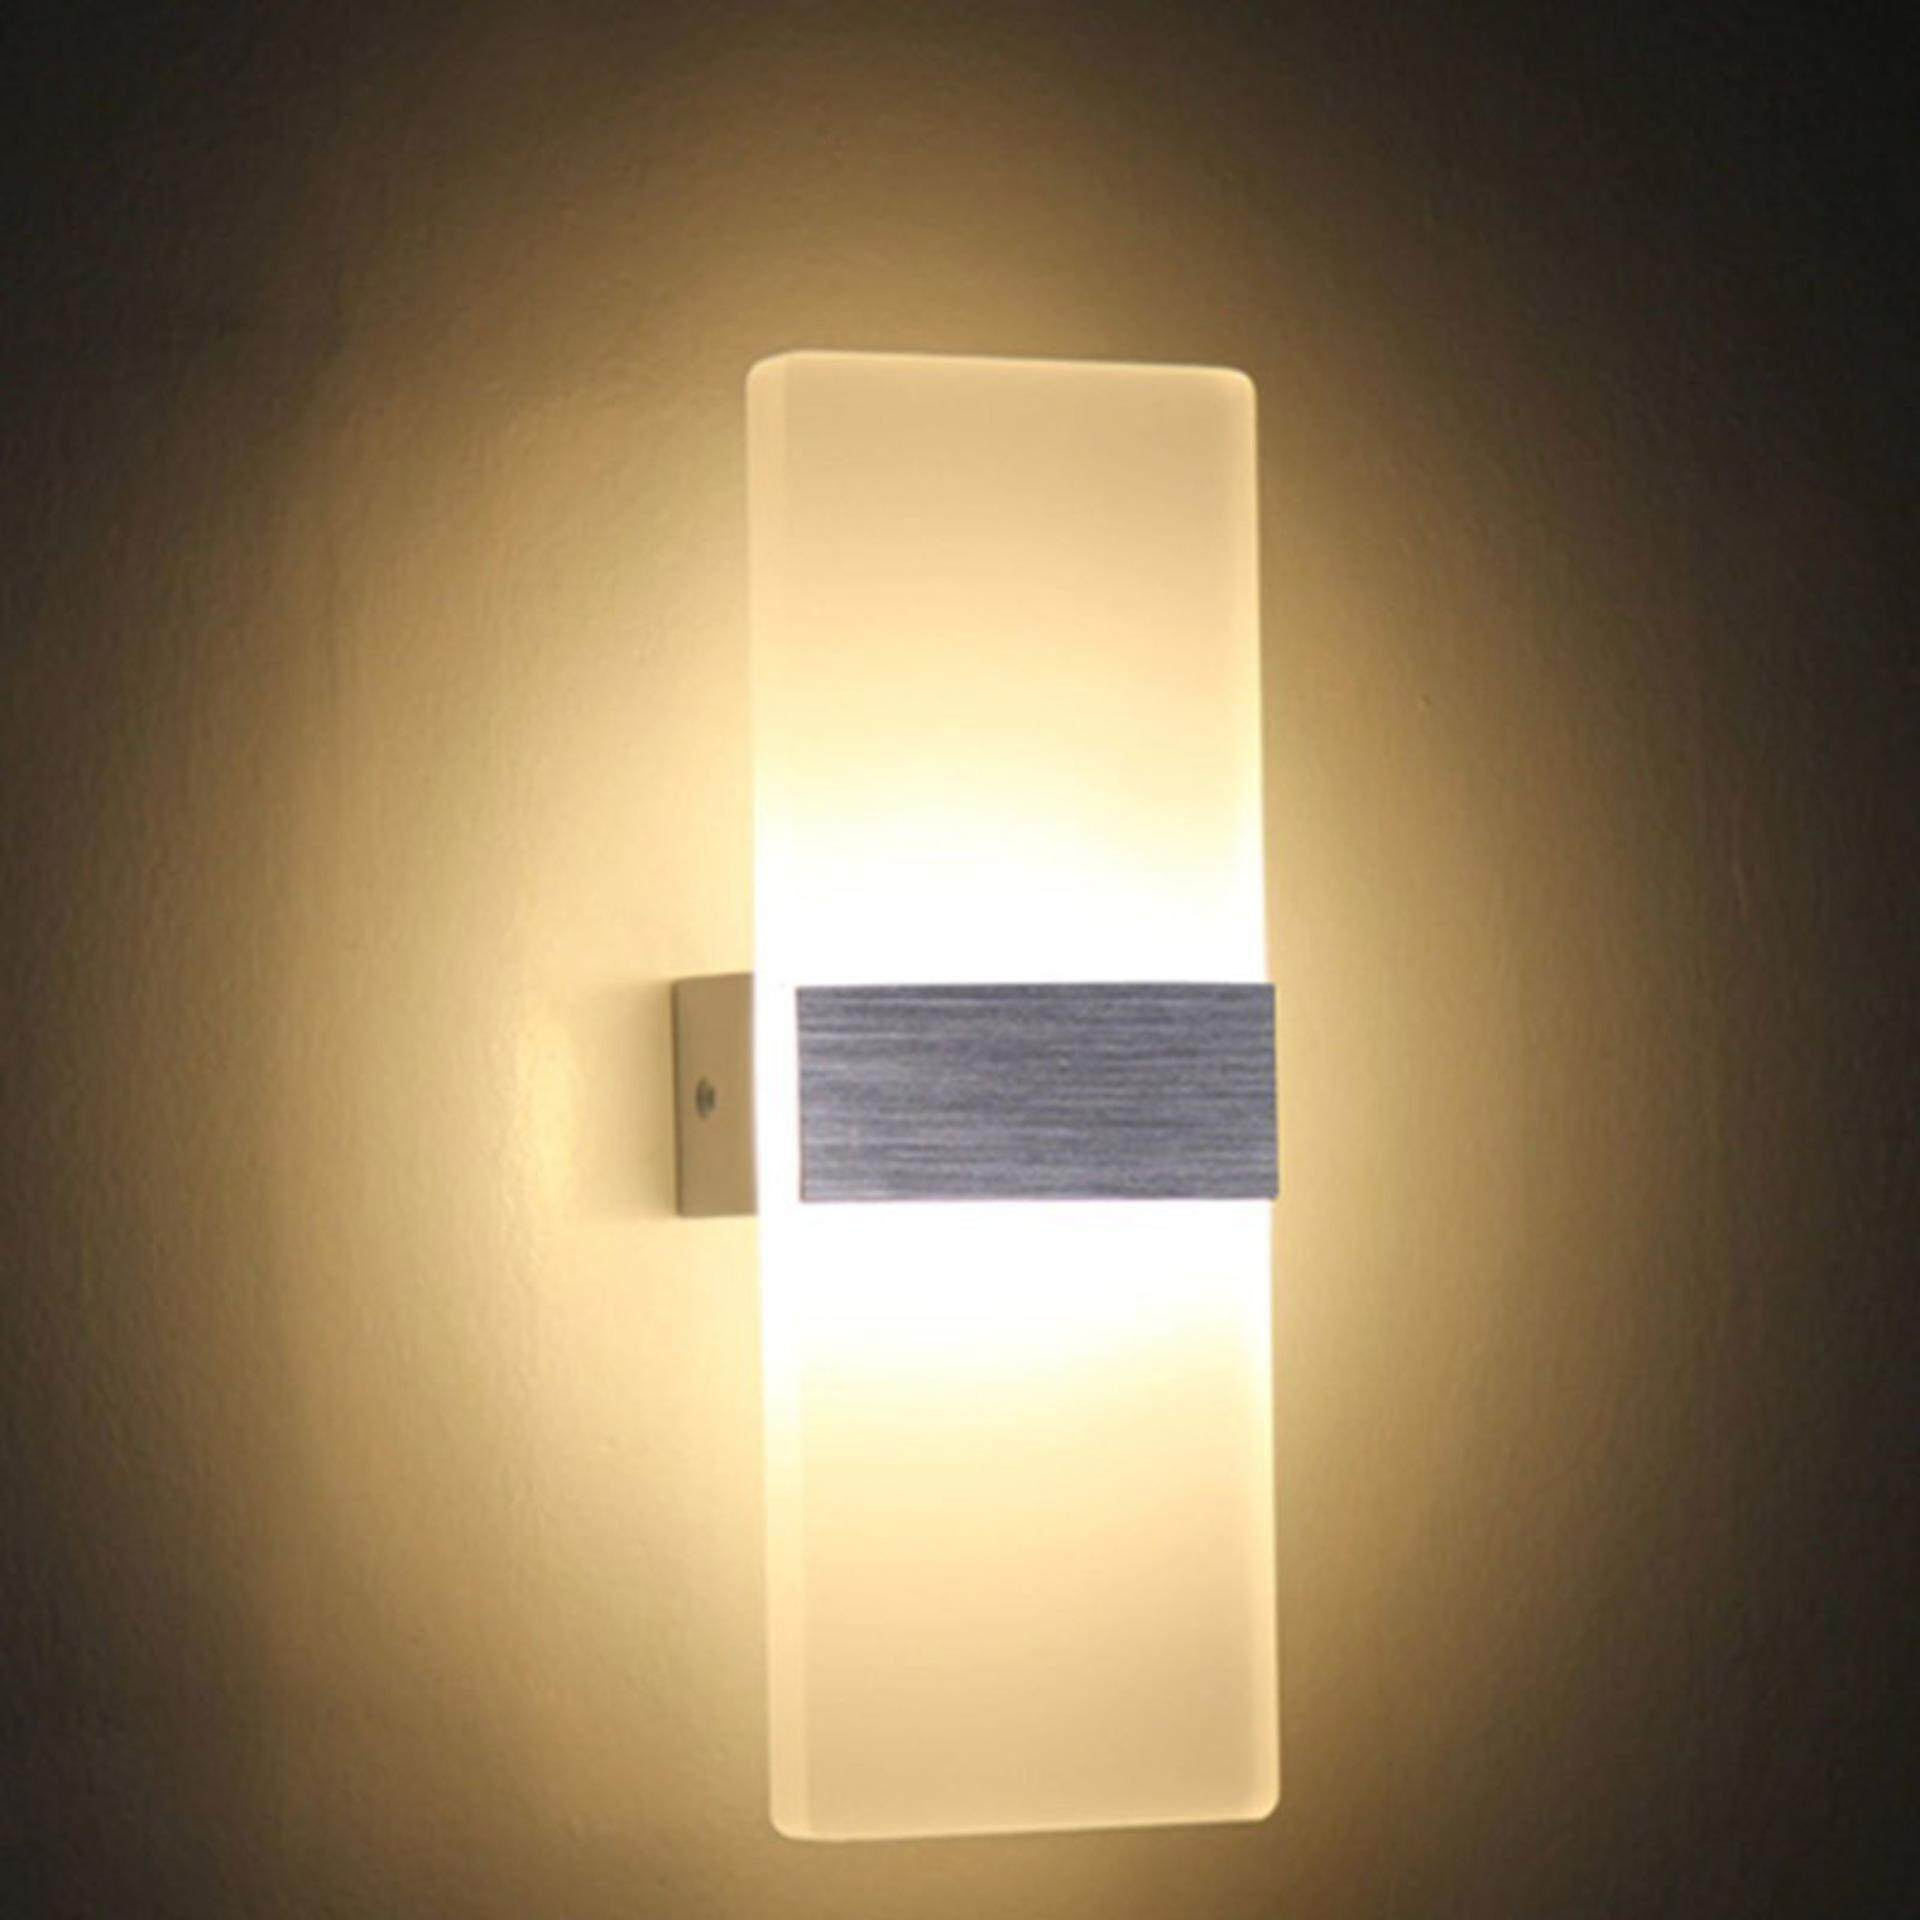 98+ Decorative Wall Lights For Homes - Modern Indoor Decorative Led ...